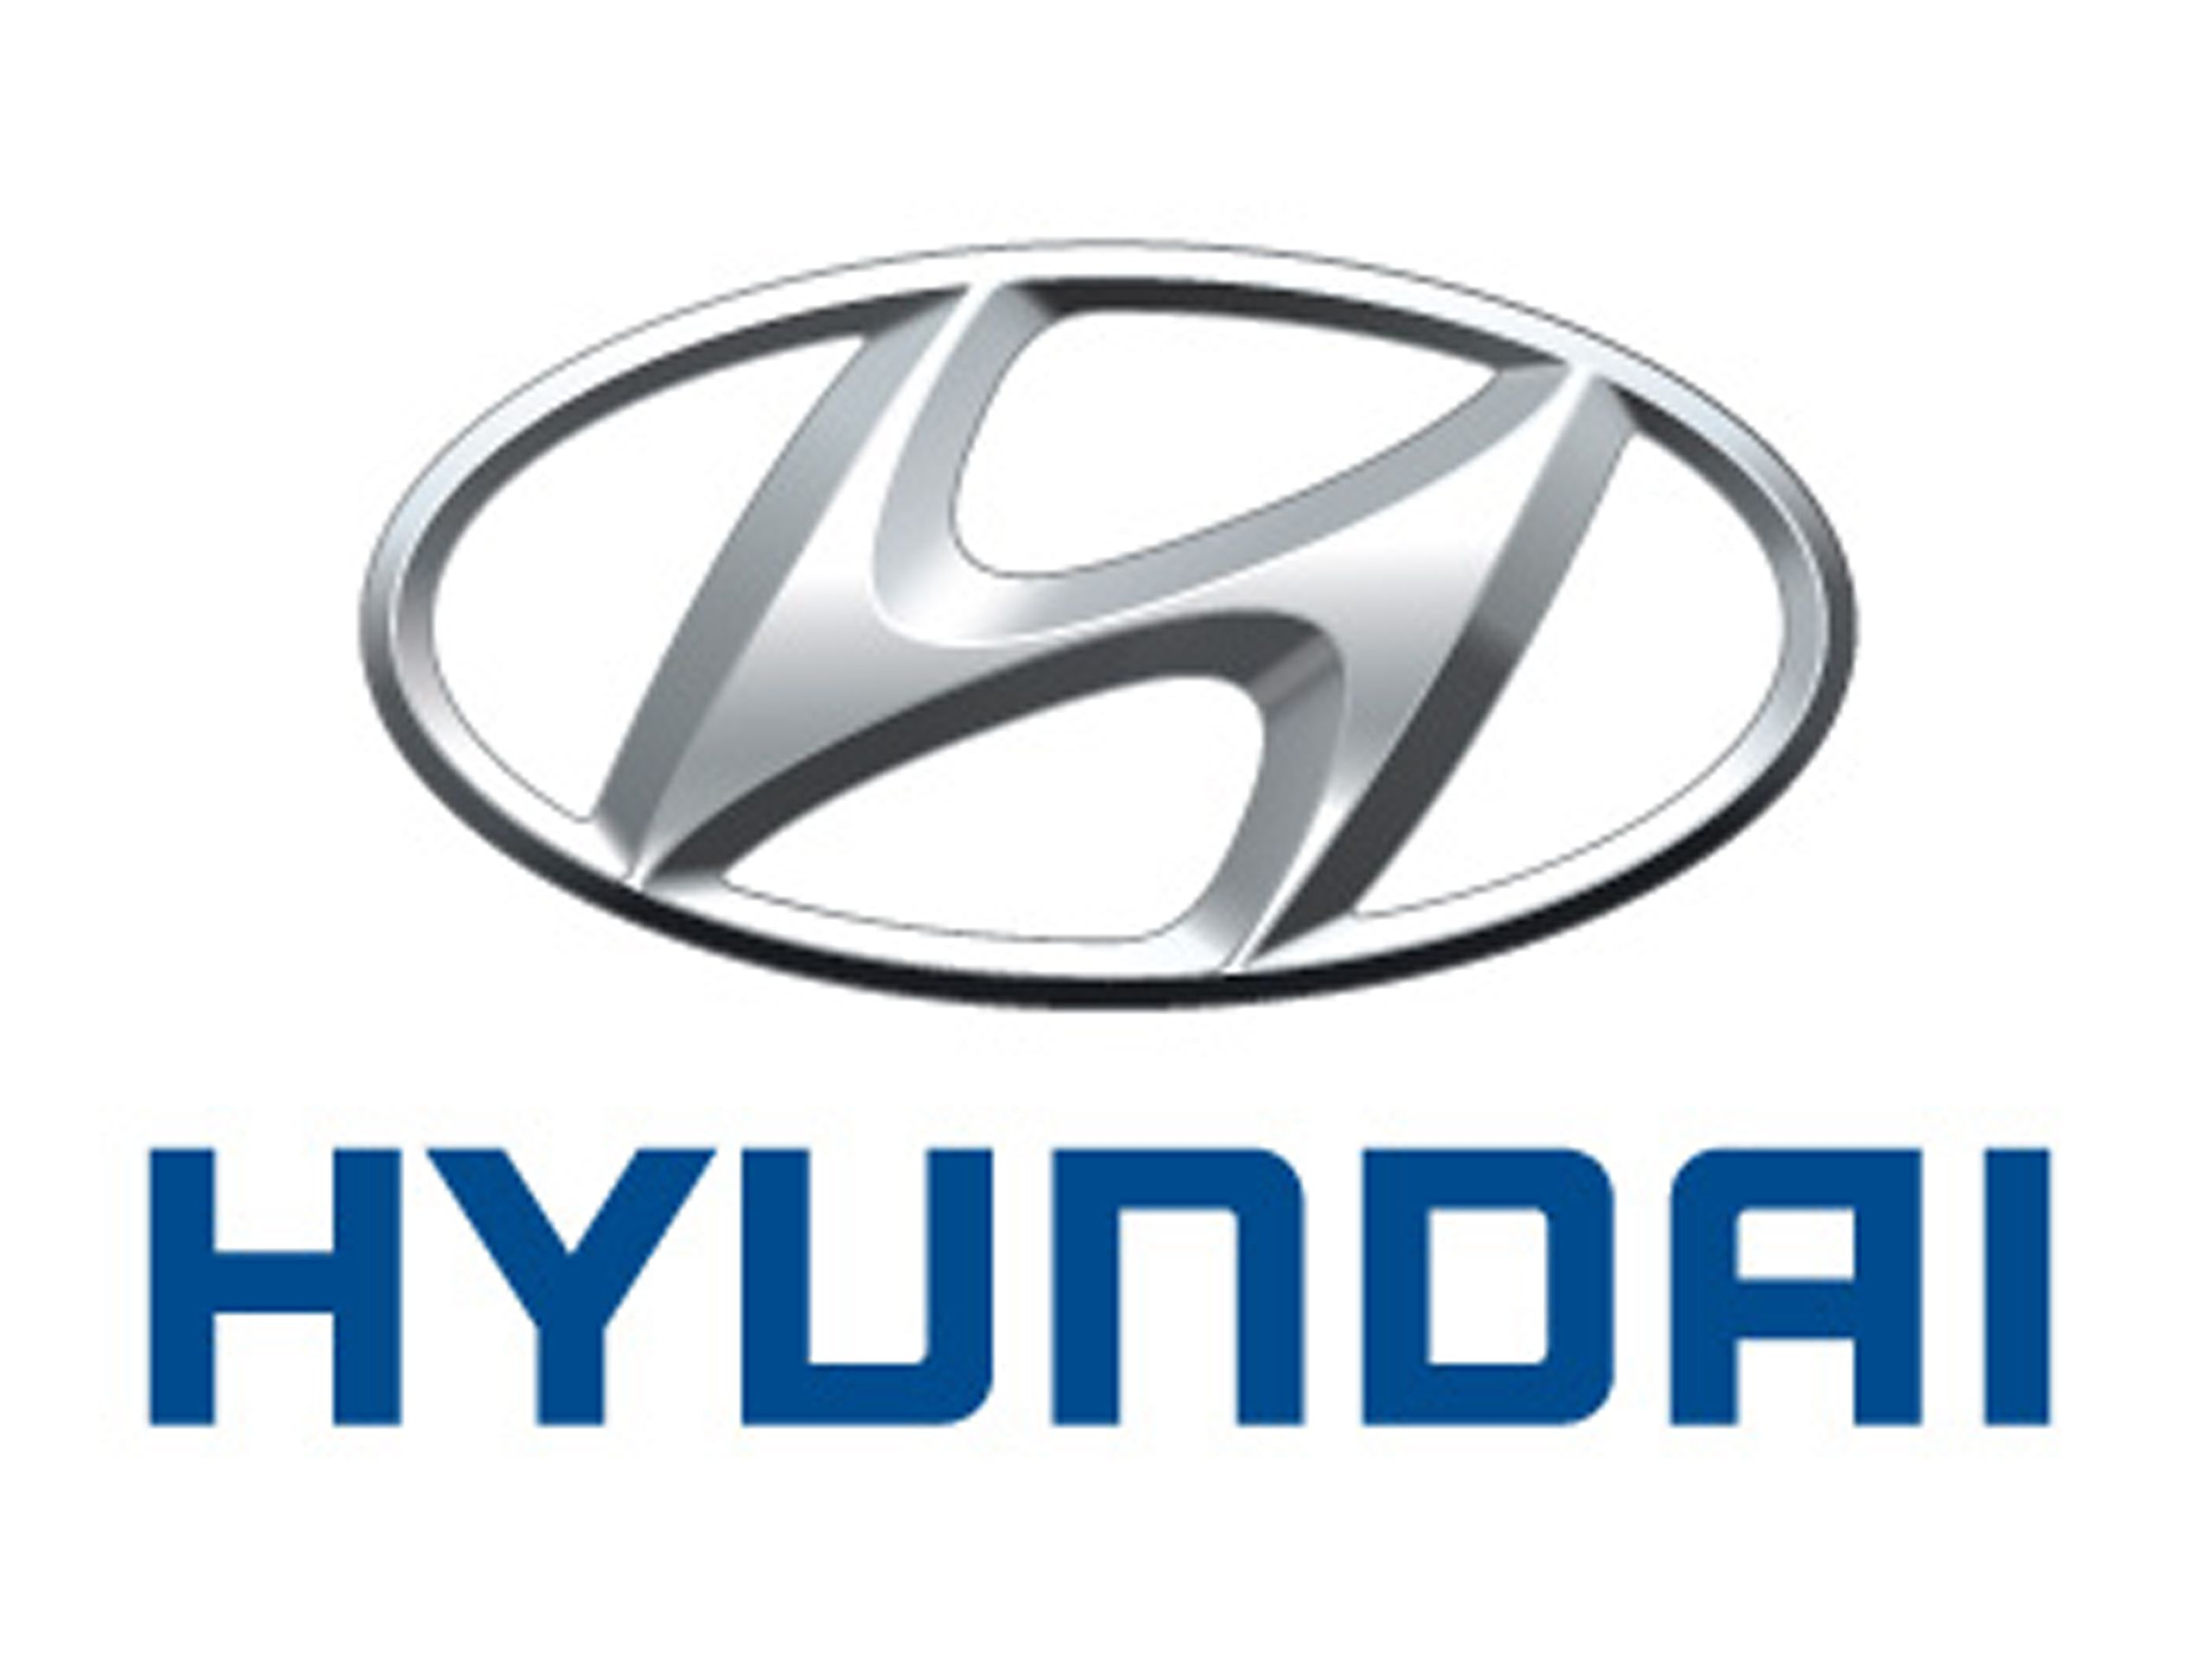 Download workshop manuals for hyundai all model at great price from download workshop manuals for hyundai all model at great price from emanualonline fandeluxe Images